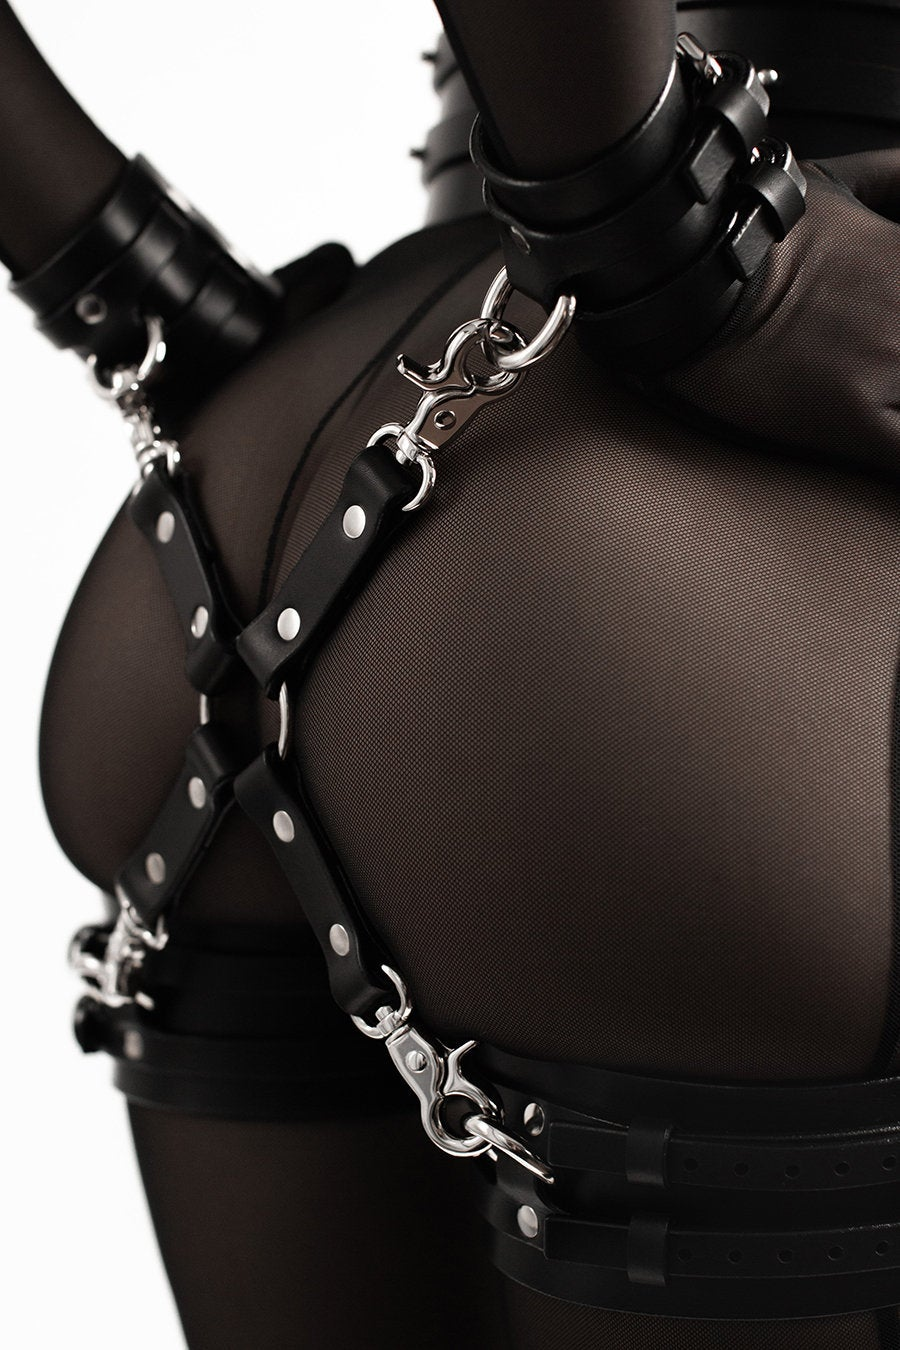 BDSM handcuffs and thigh cuffs